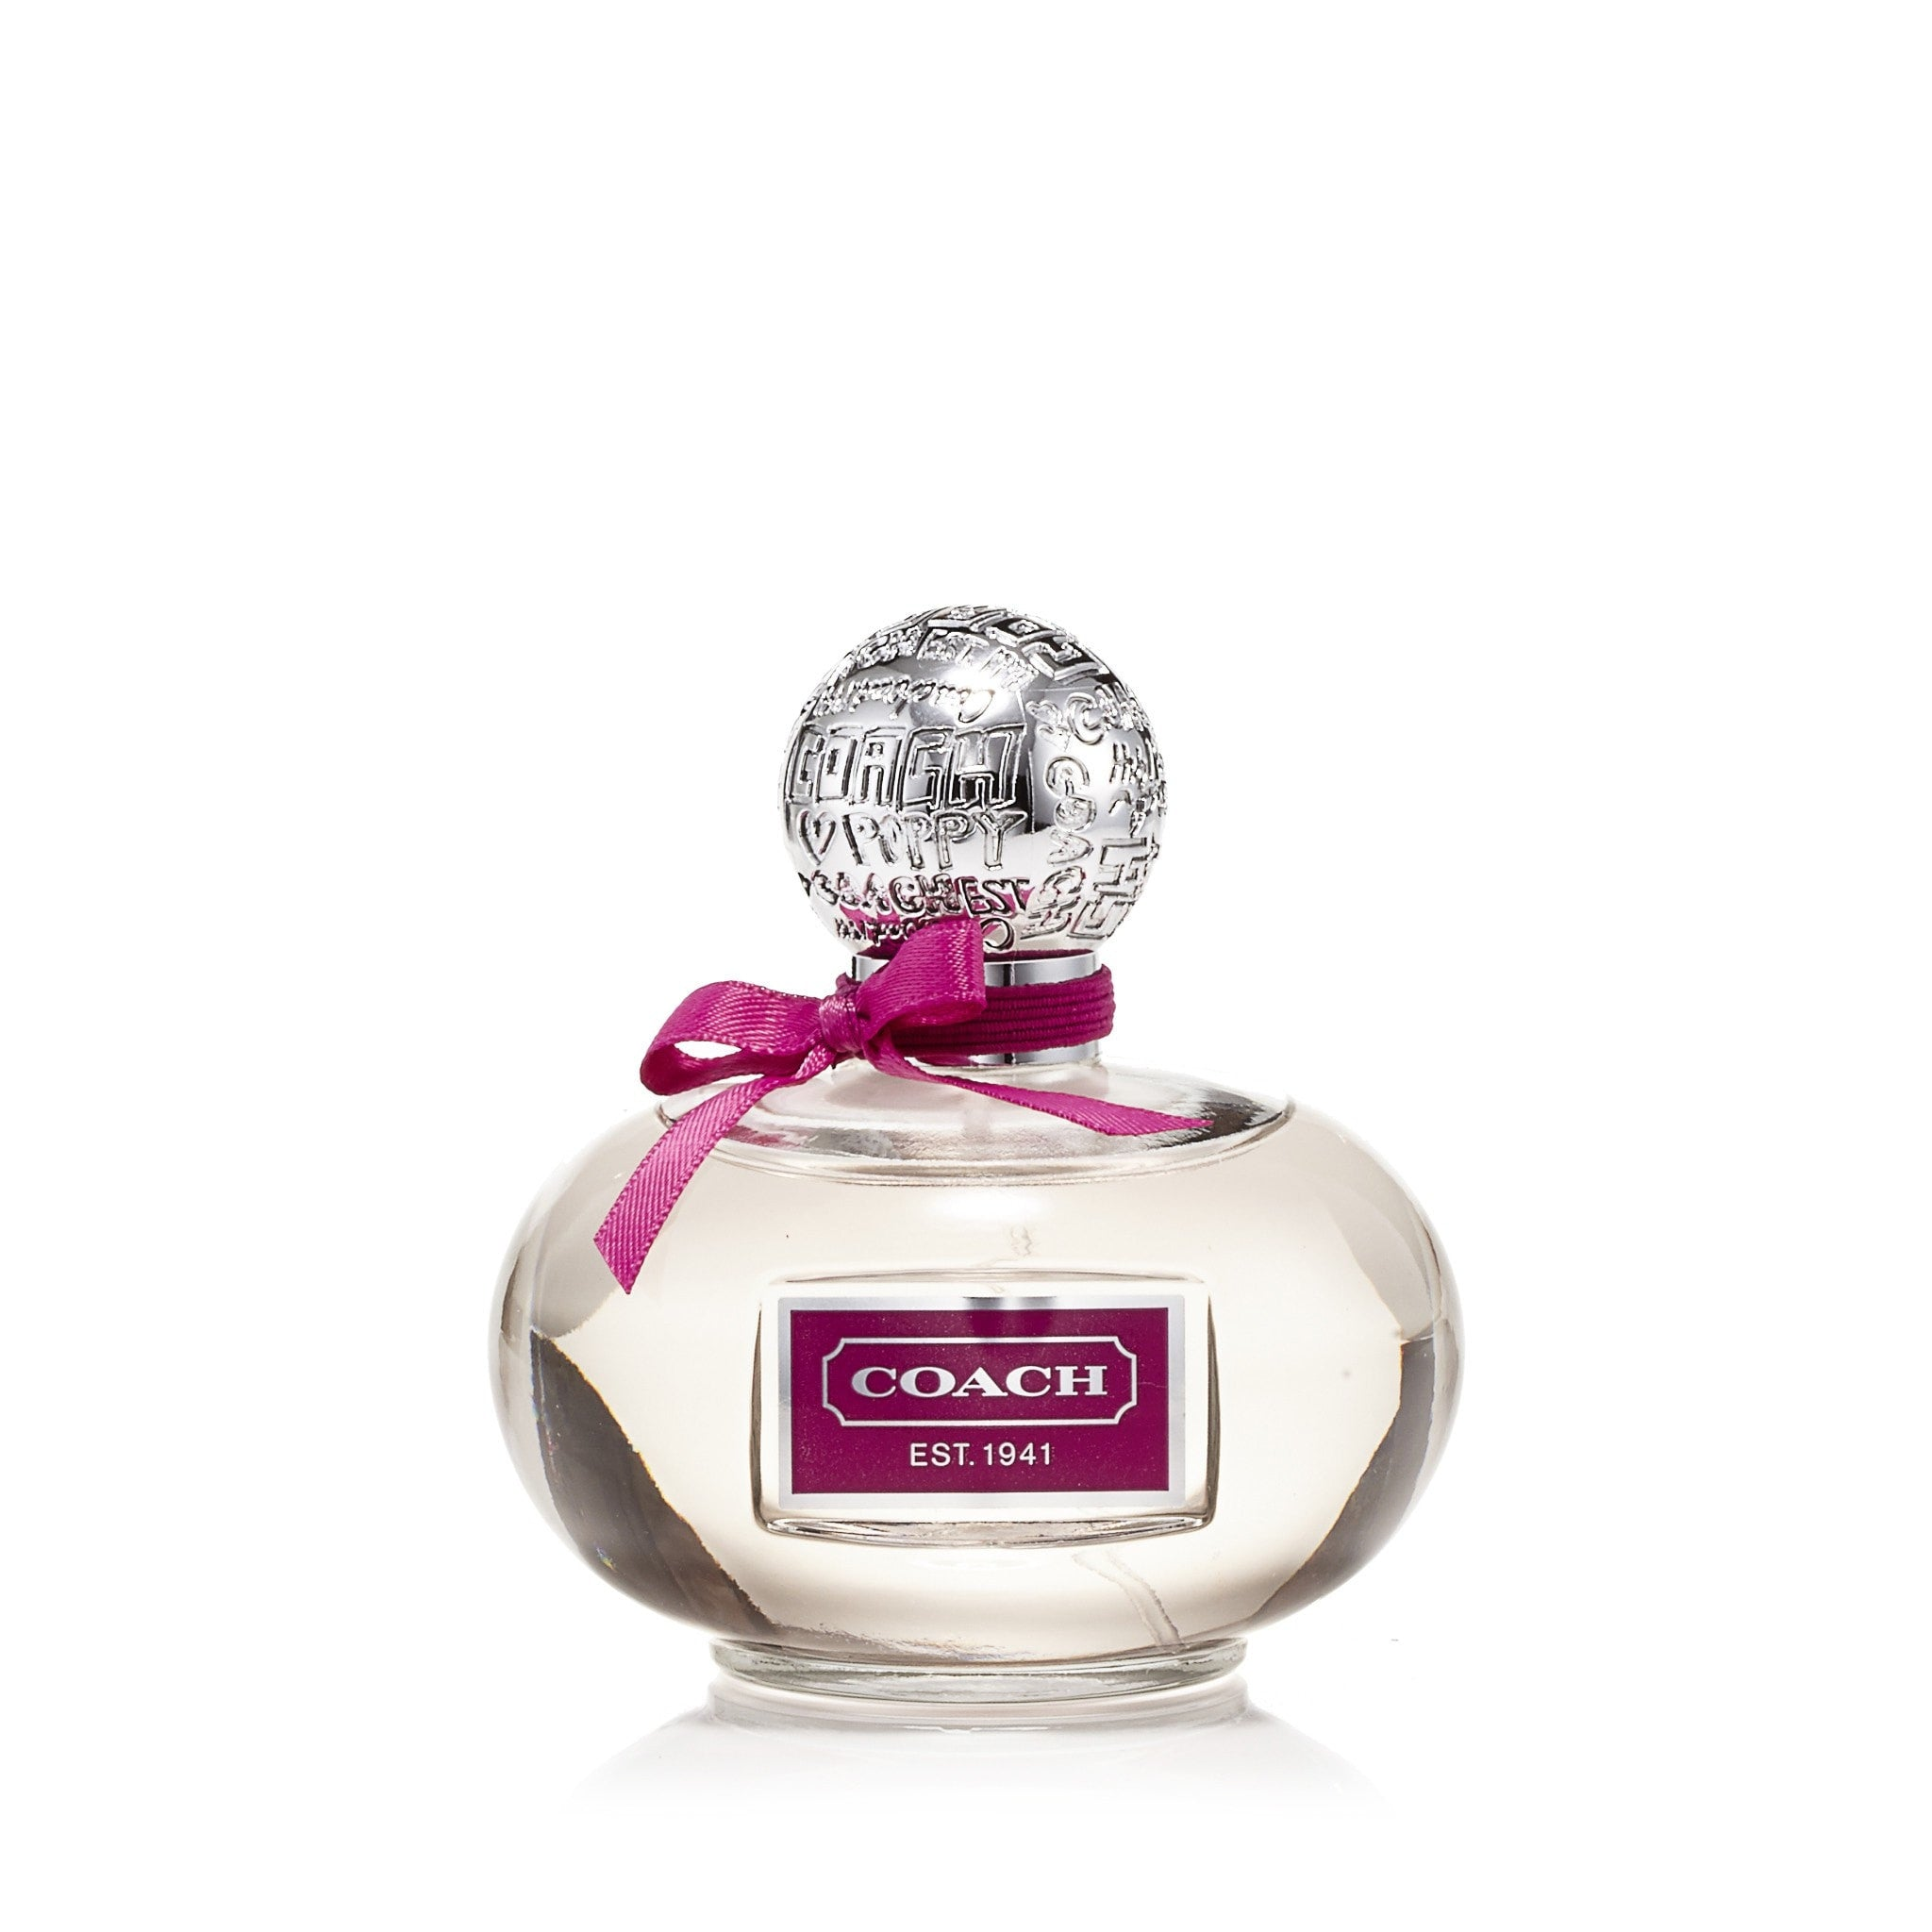 Fragrance market discounted fragrances coach mightylinksfo